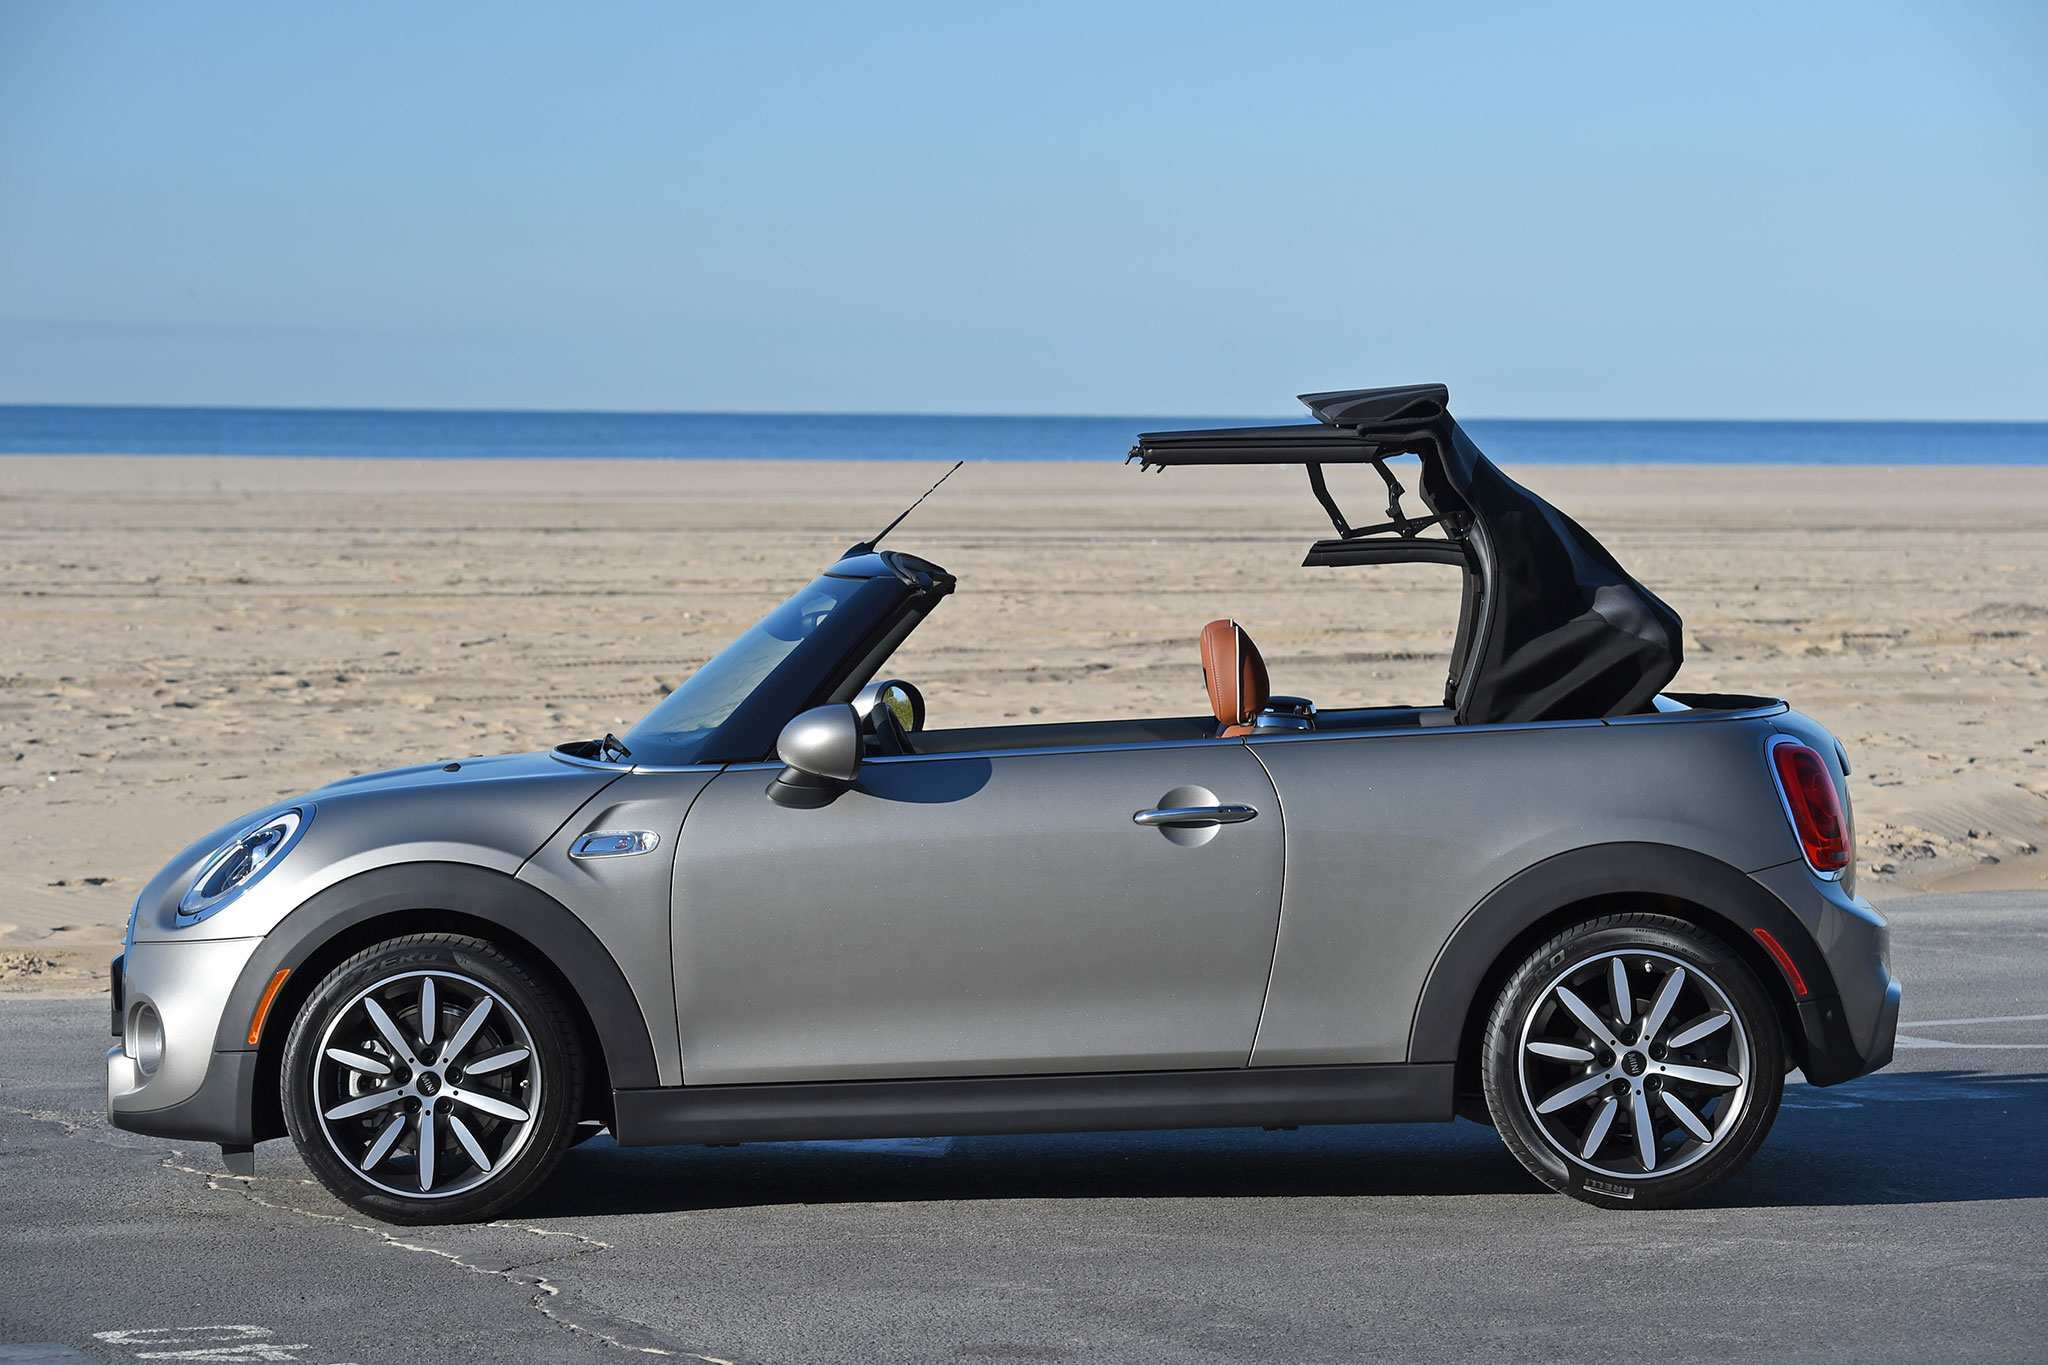 38 Best Review 2020 Mini Cooper Convertible S Redesign and Concept by 2020 Mini Cooper Convertible S